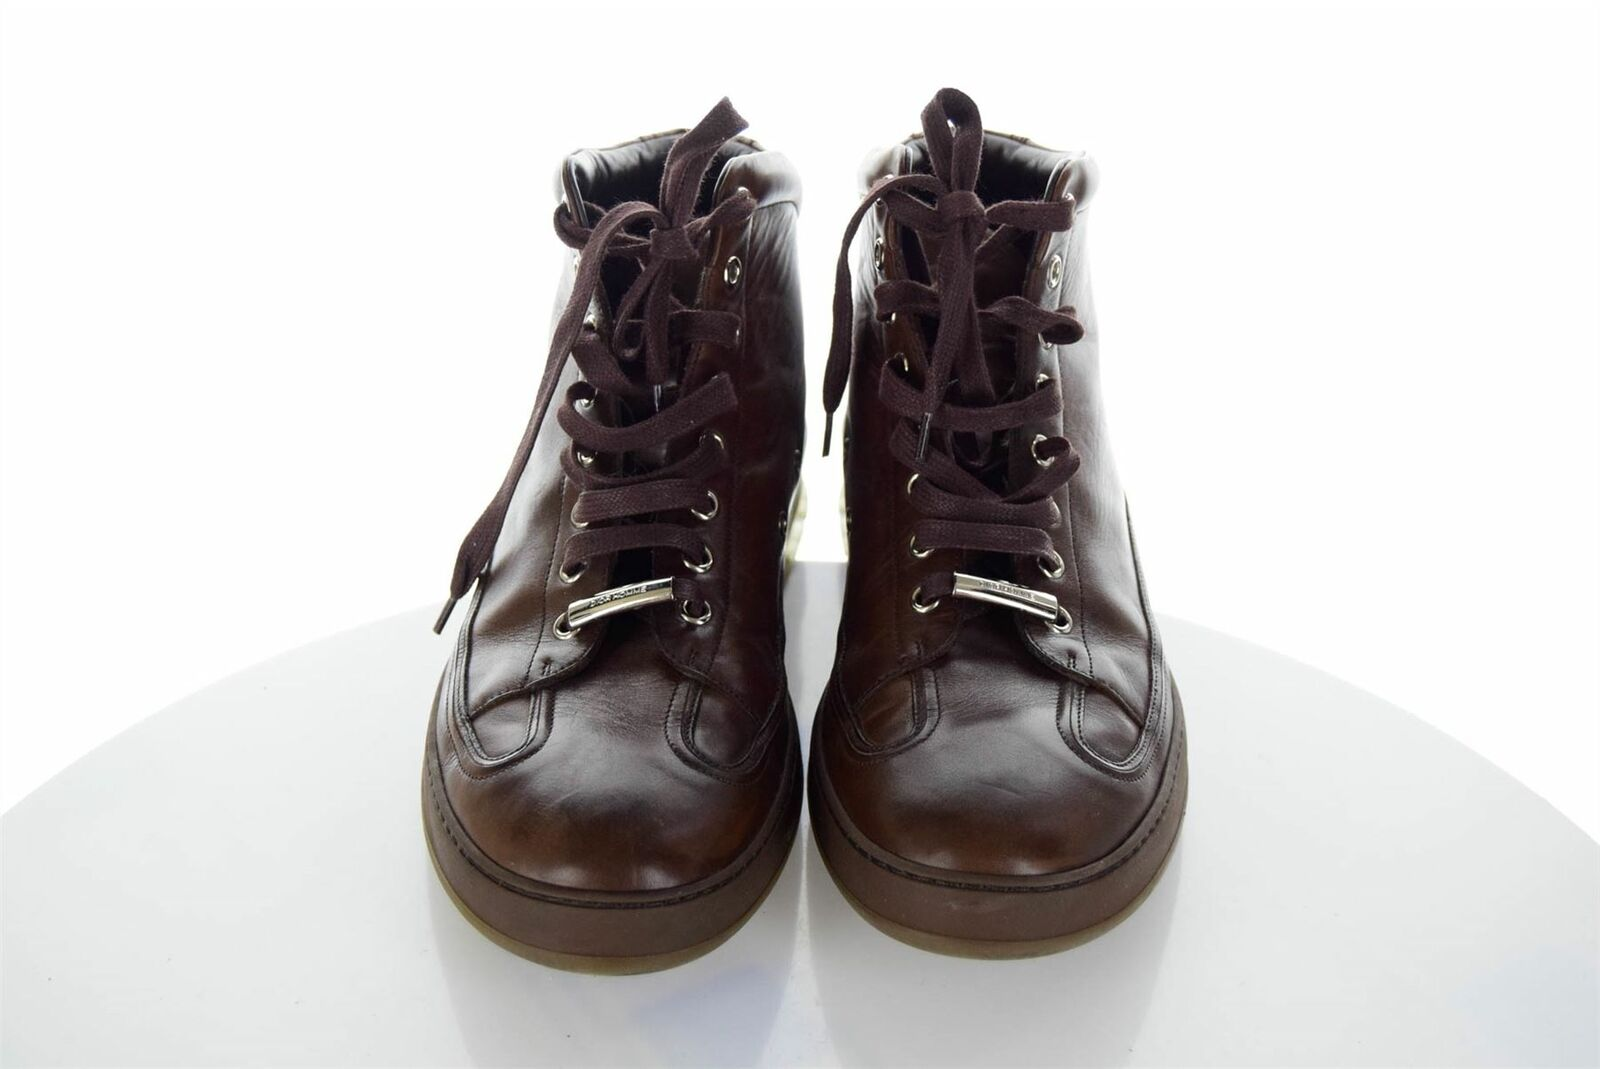 DIOR HOMME A W 2013 Brown Leather High-Top Trainers, UK 9.5 US 10 EU 44